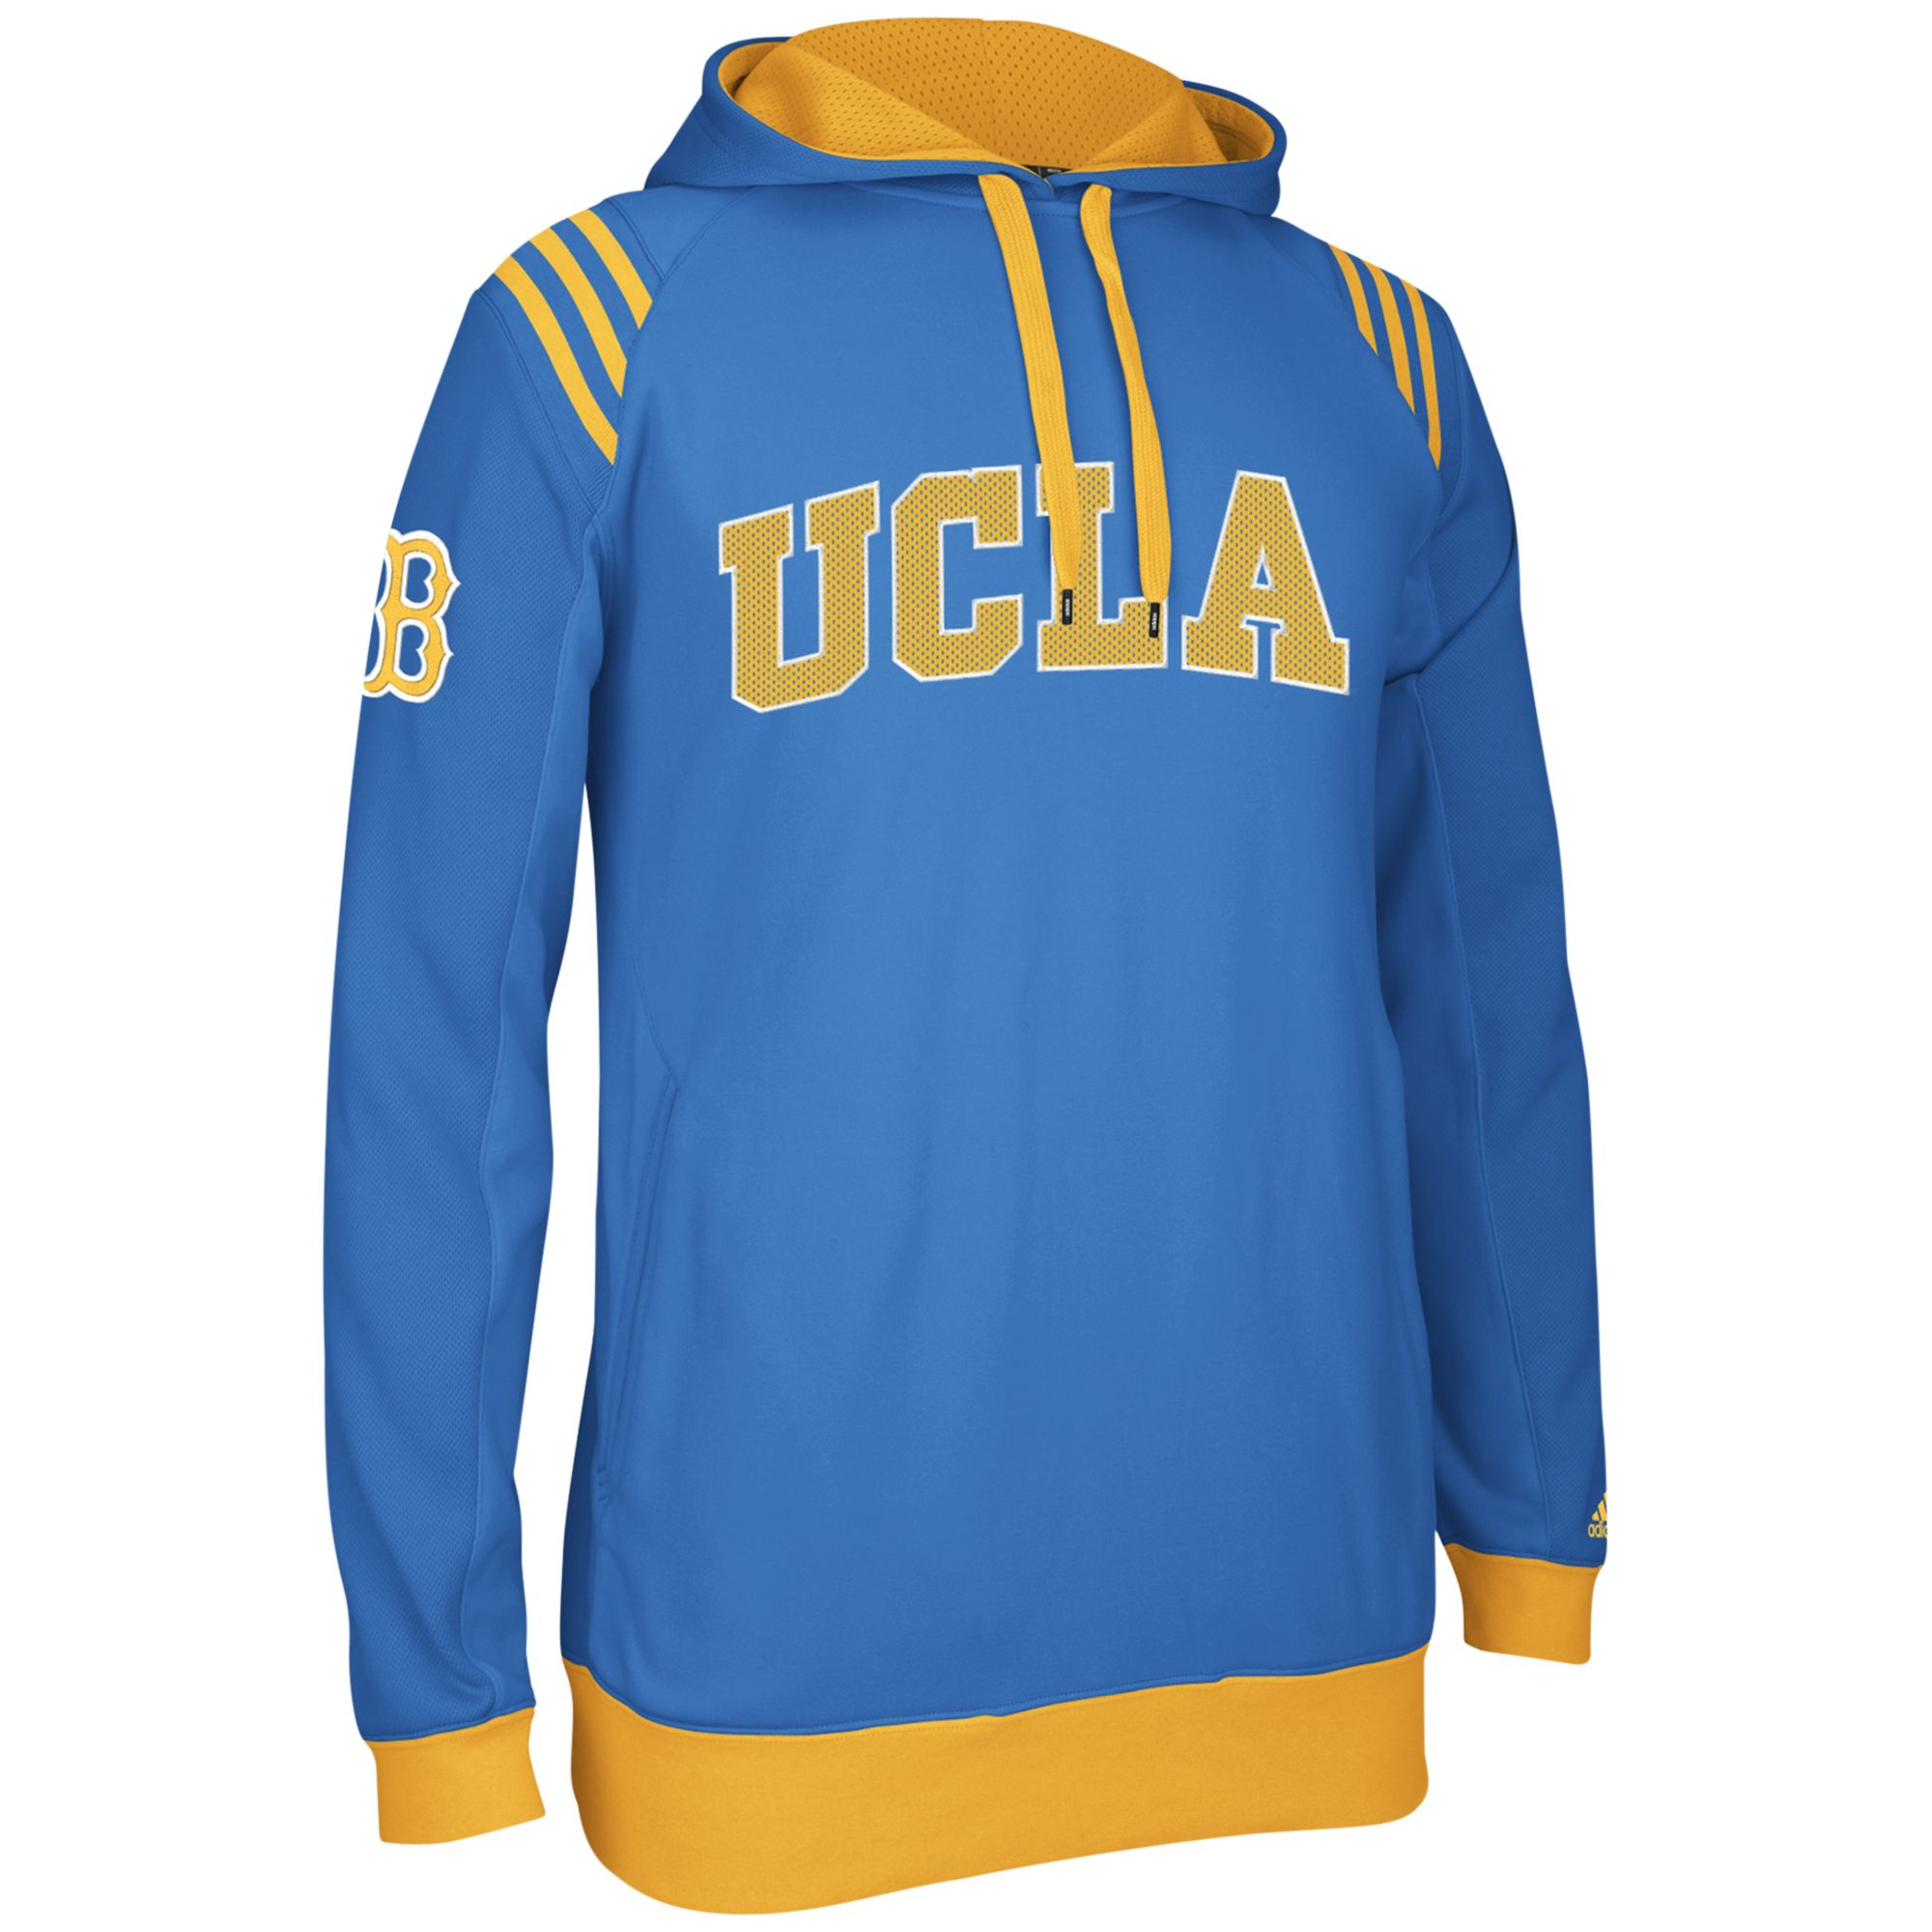 new product 9fc5f 5c306 Womens Bruins Sweater